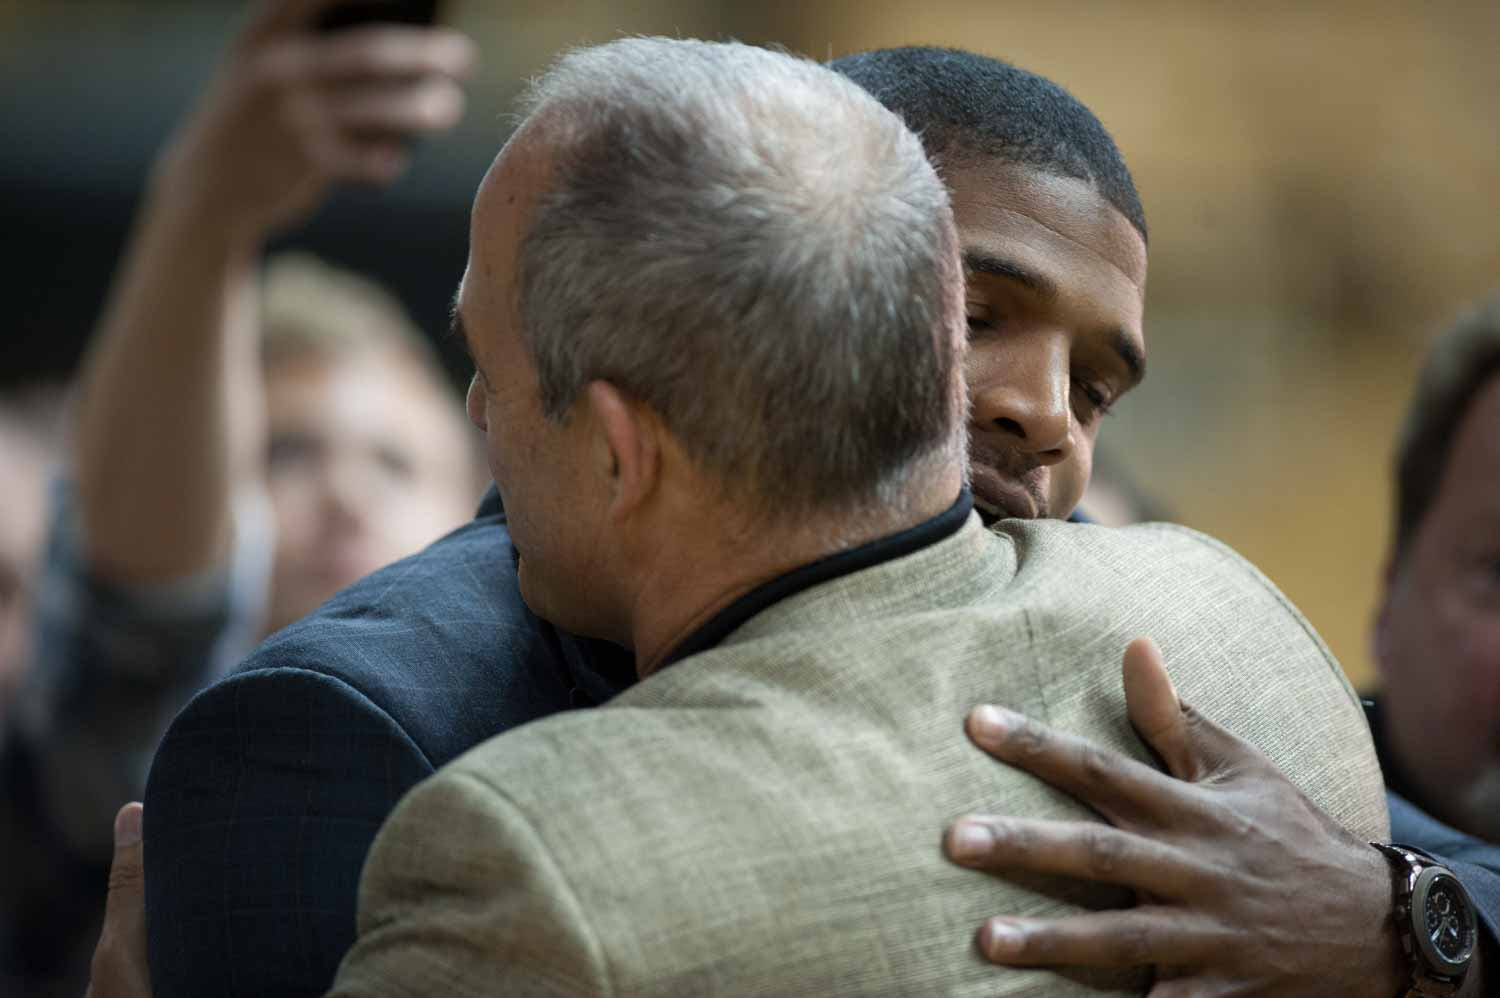 Michael Sam, 2013 SEC defensive player of the year, gives his former head football coach a hug after Pinkel finishes answering questions.